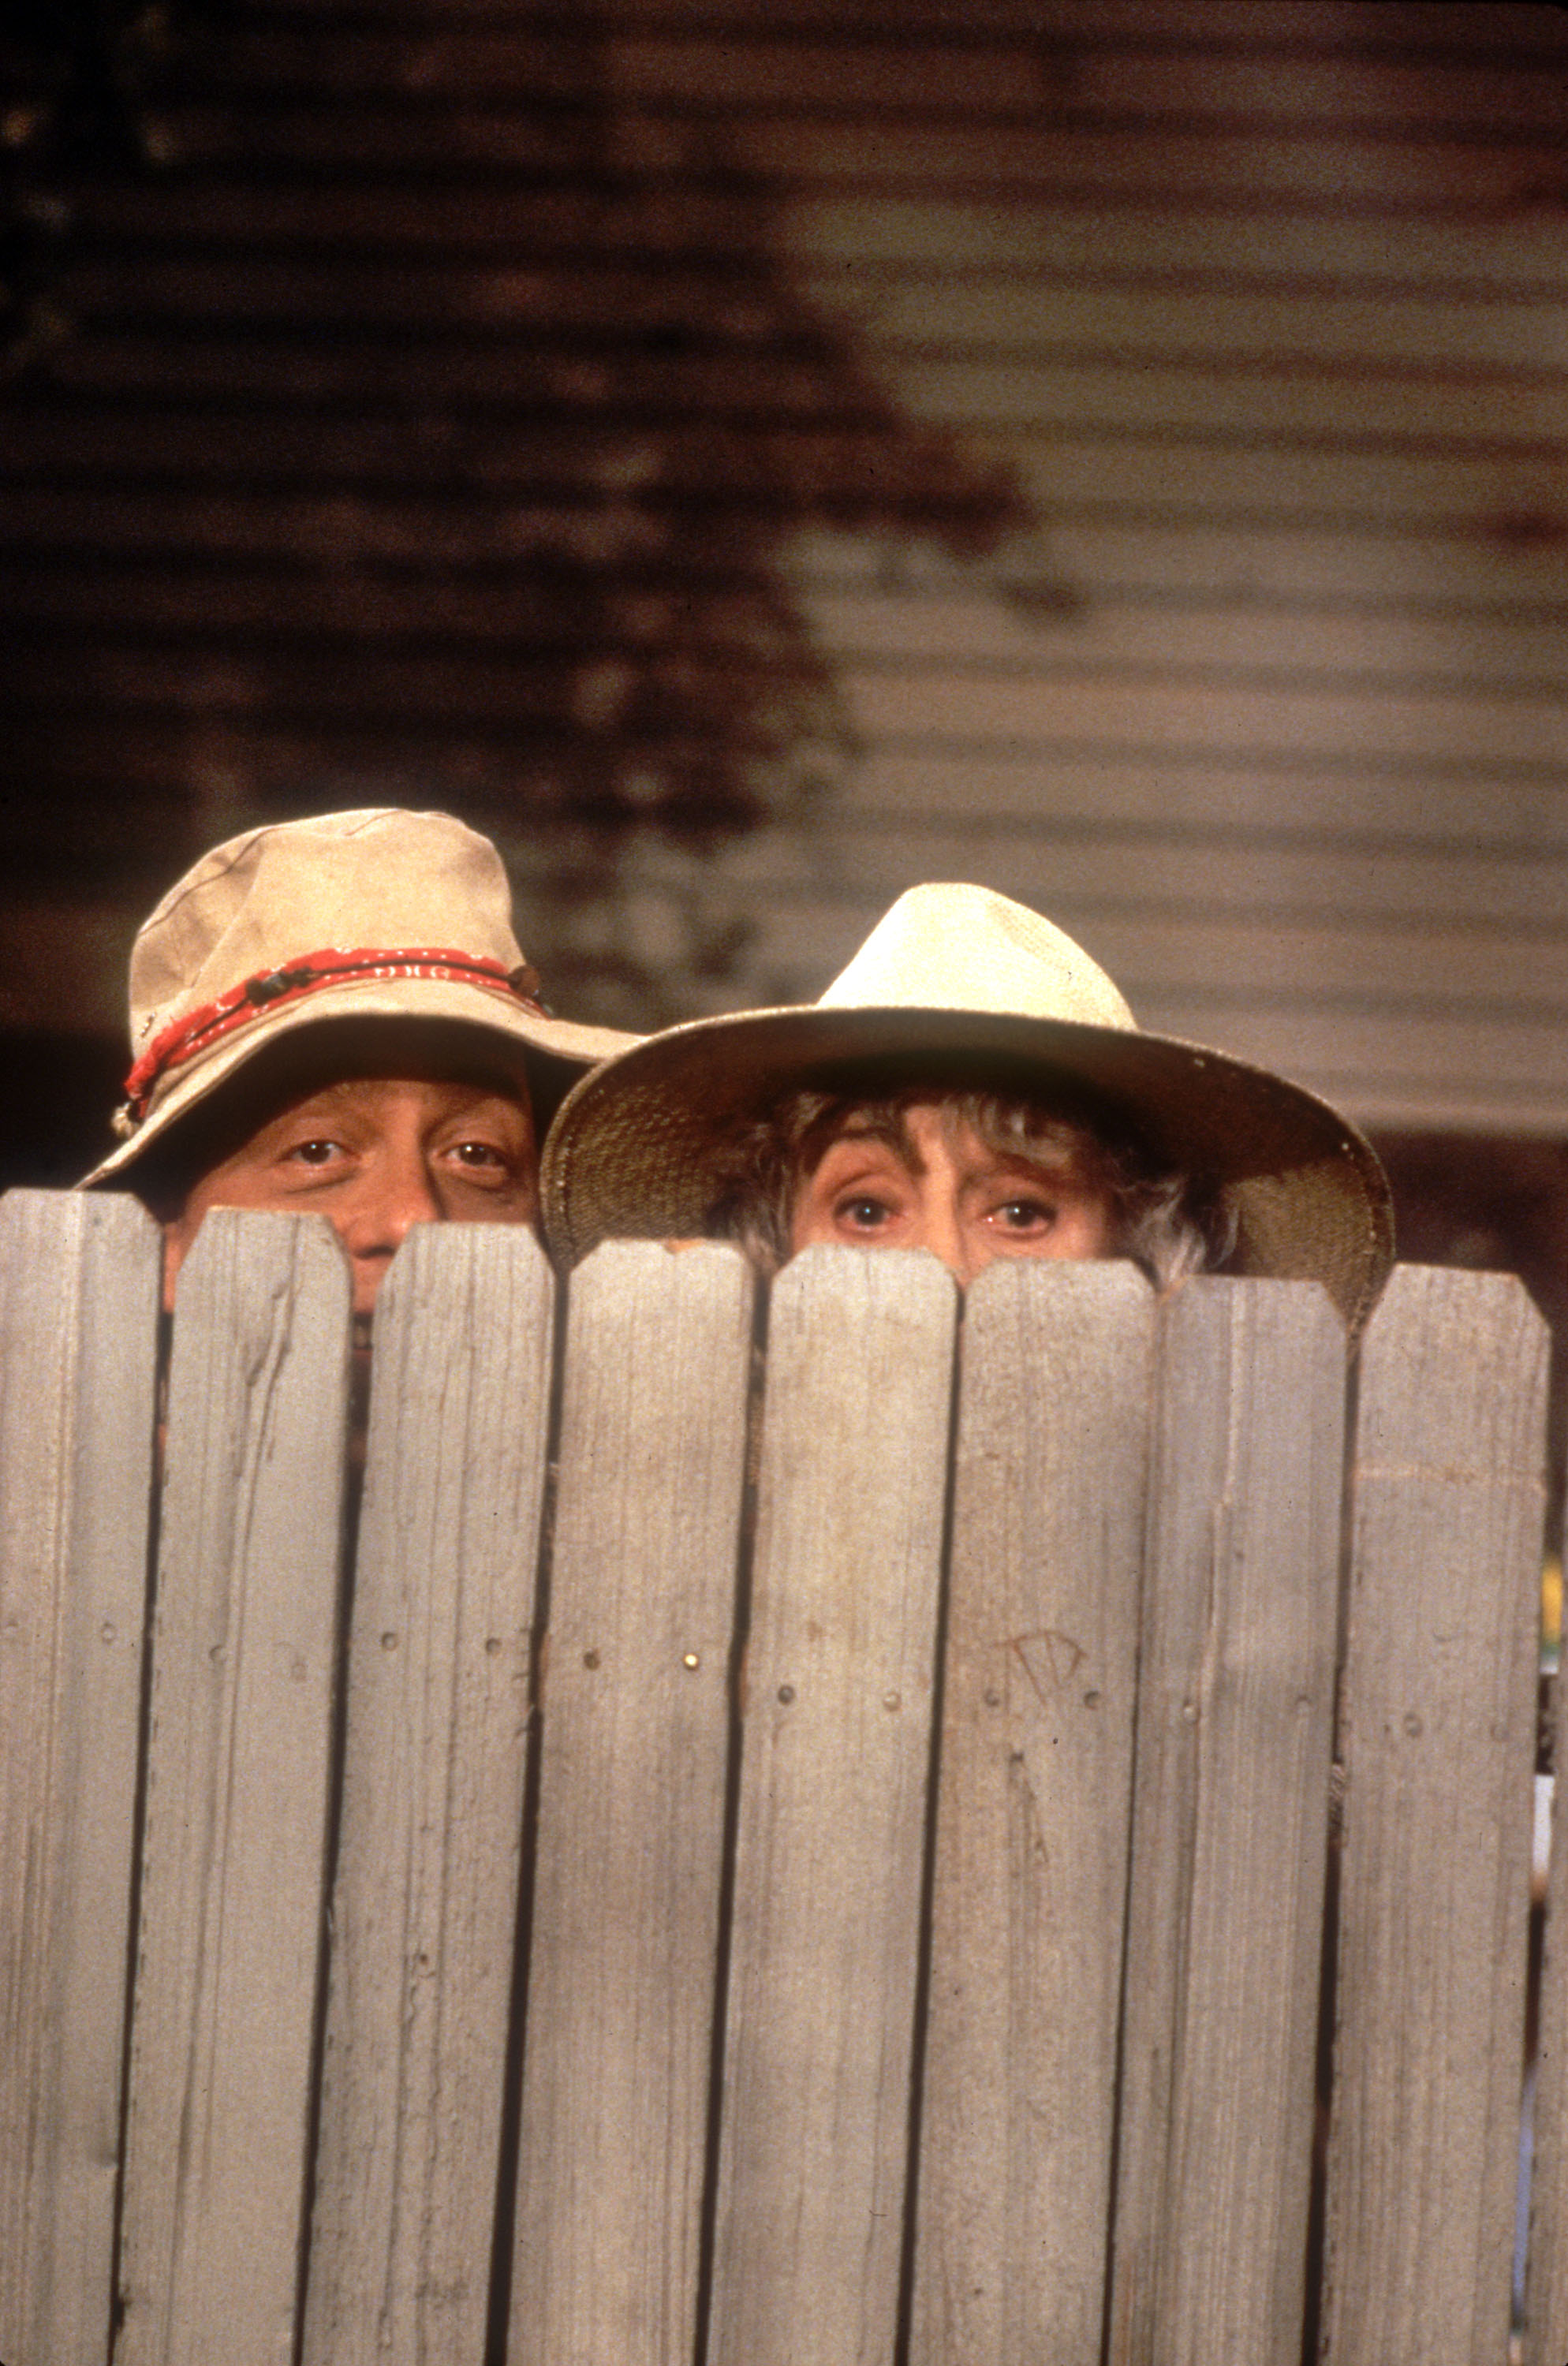 Perfect Wilson Home Improvement TV Show 1988 x 3000 · 746 kB · jpeg